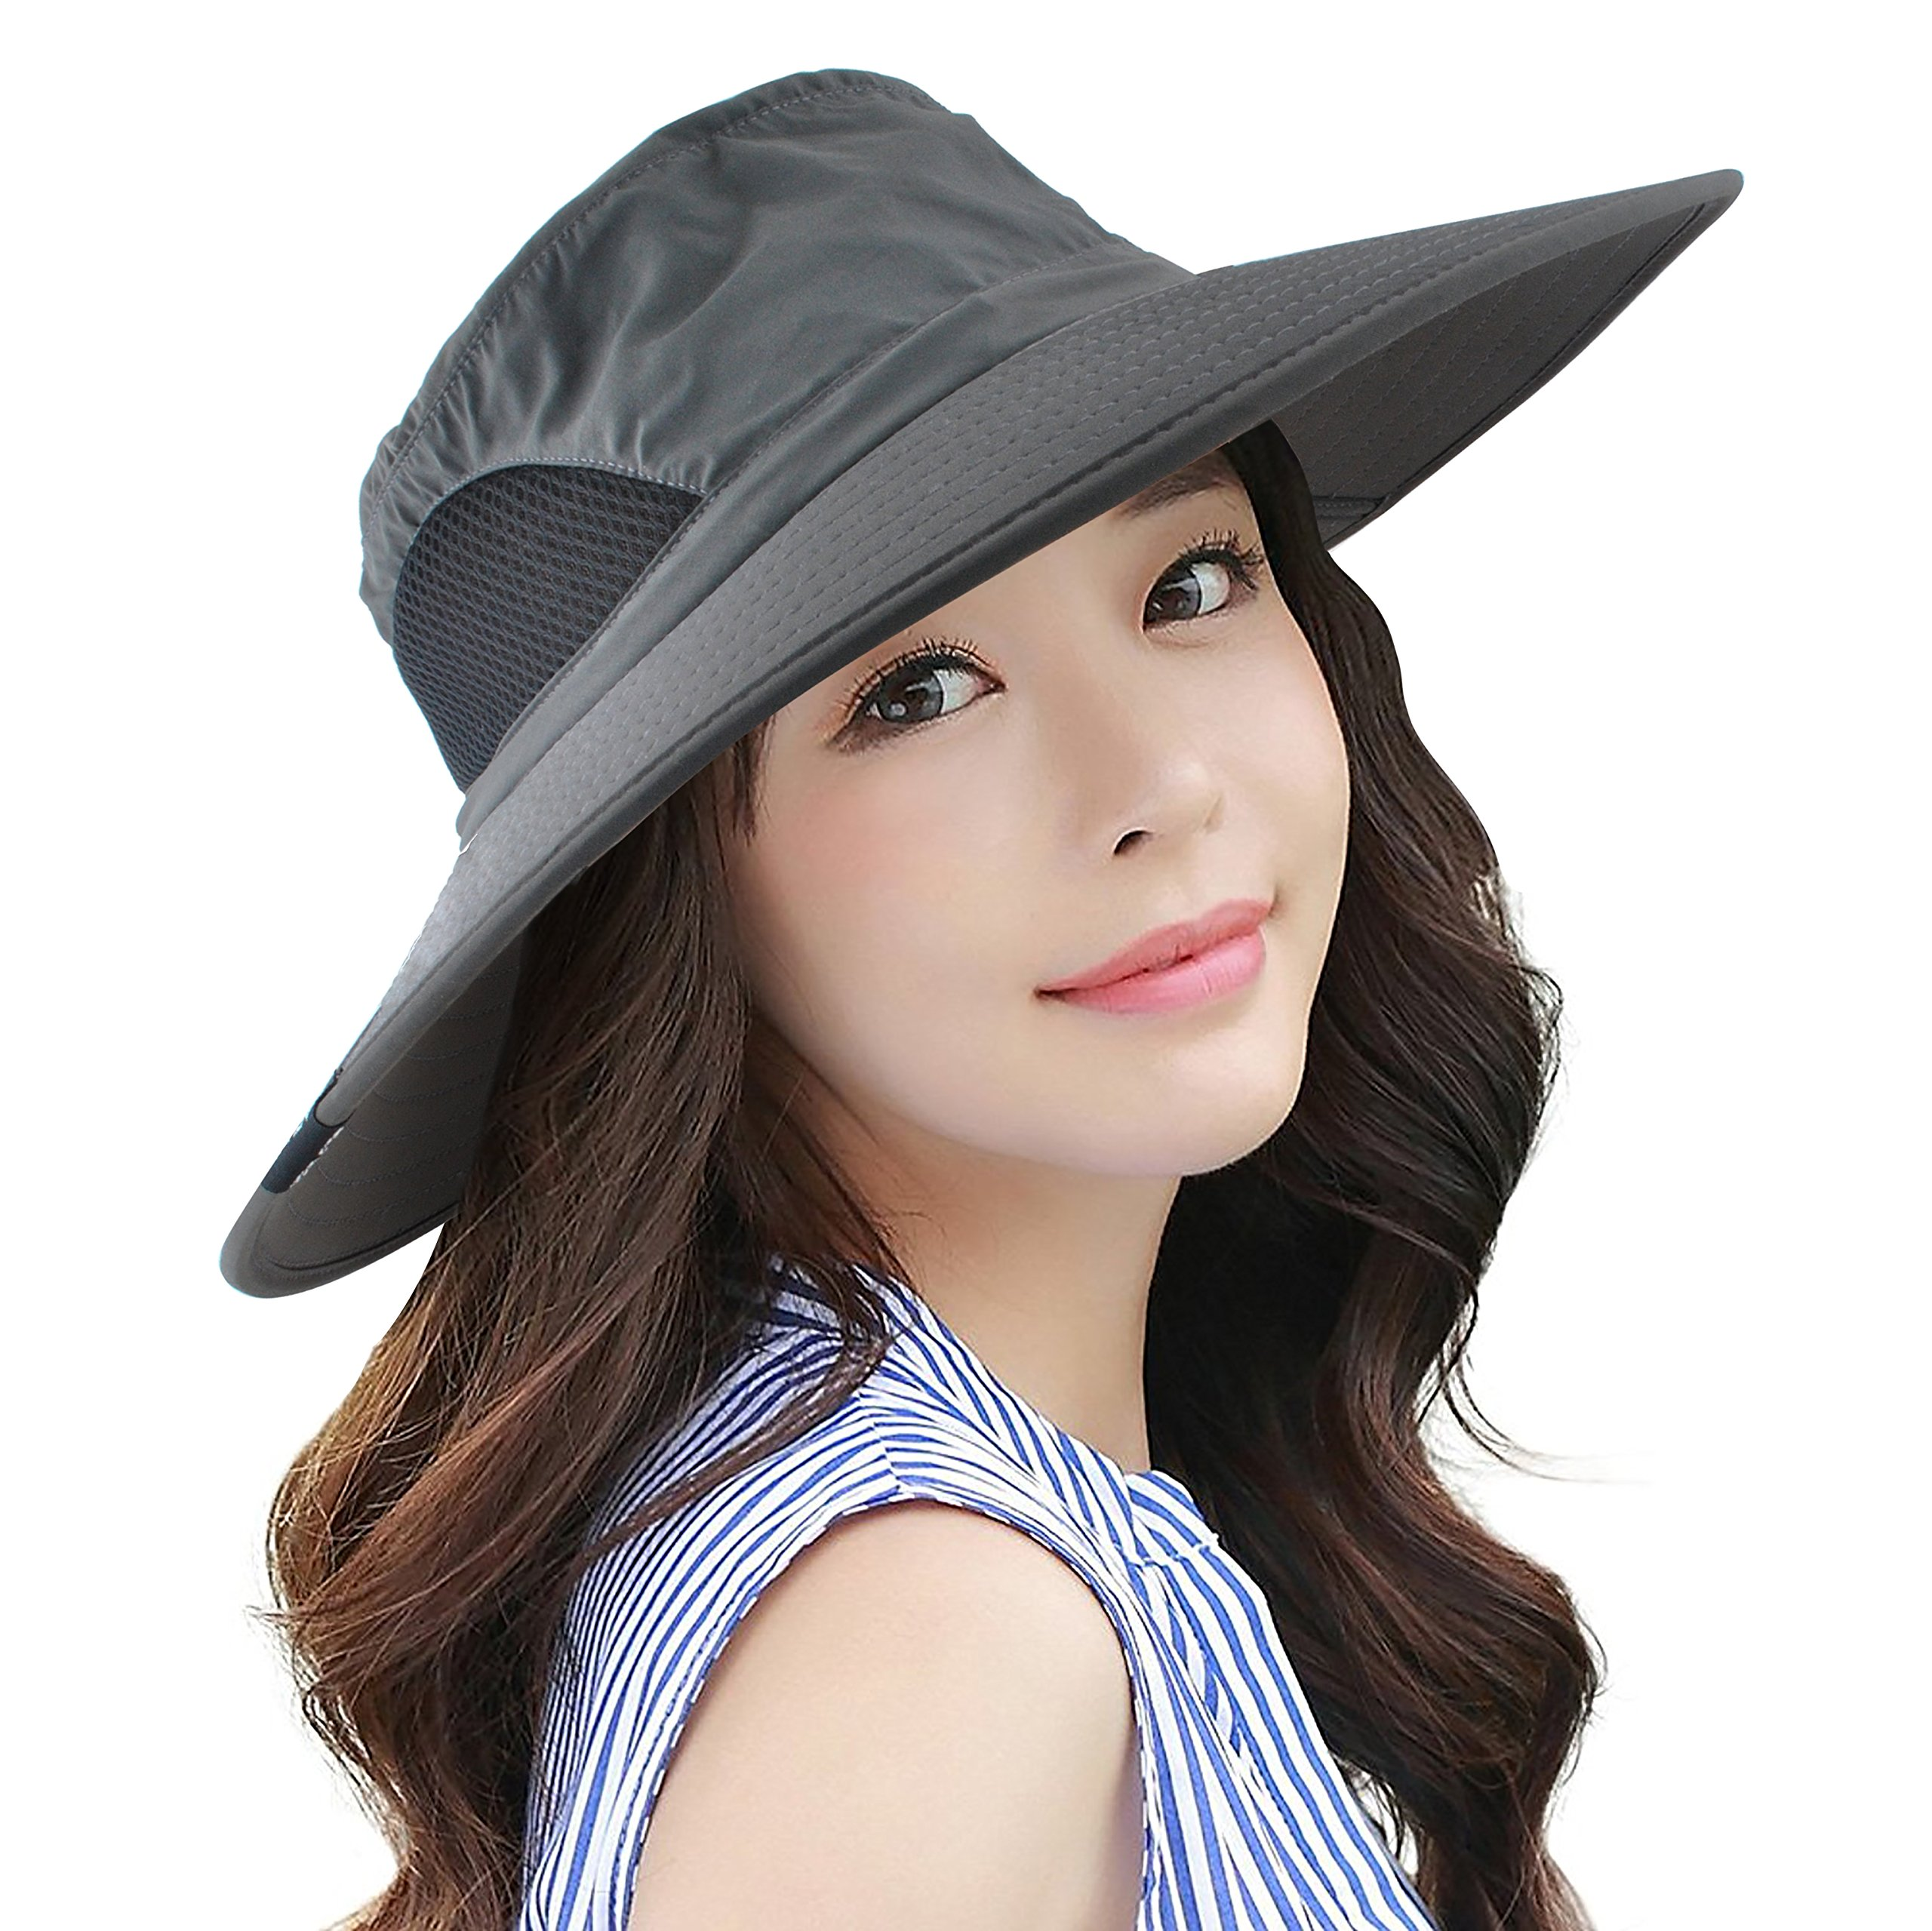 09eecab7 Headshion Sun Hats for Women, Wide Brim UV Protection Sun Hat Foldable  Boonie Cap with